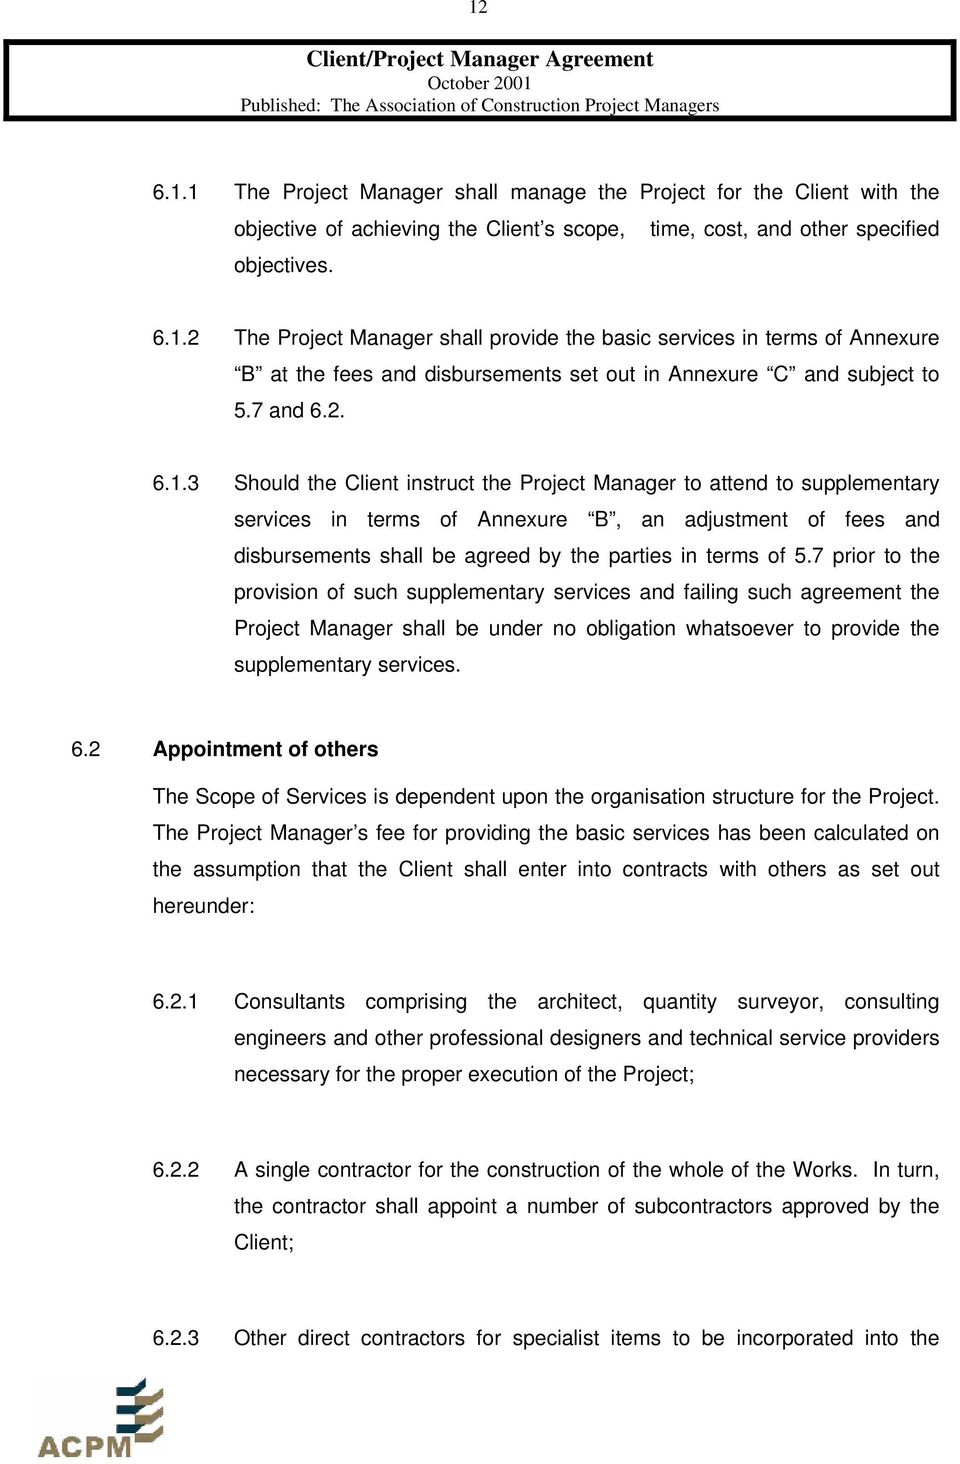 3 Should the Client instruct the Project Manager to attend to supplementary services in terms of Annexure B, an adjustment of fees and disbursements shall be agreed by the parties in terms of 5.